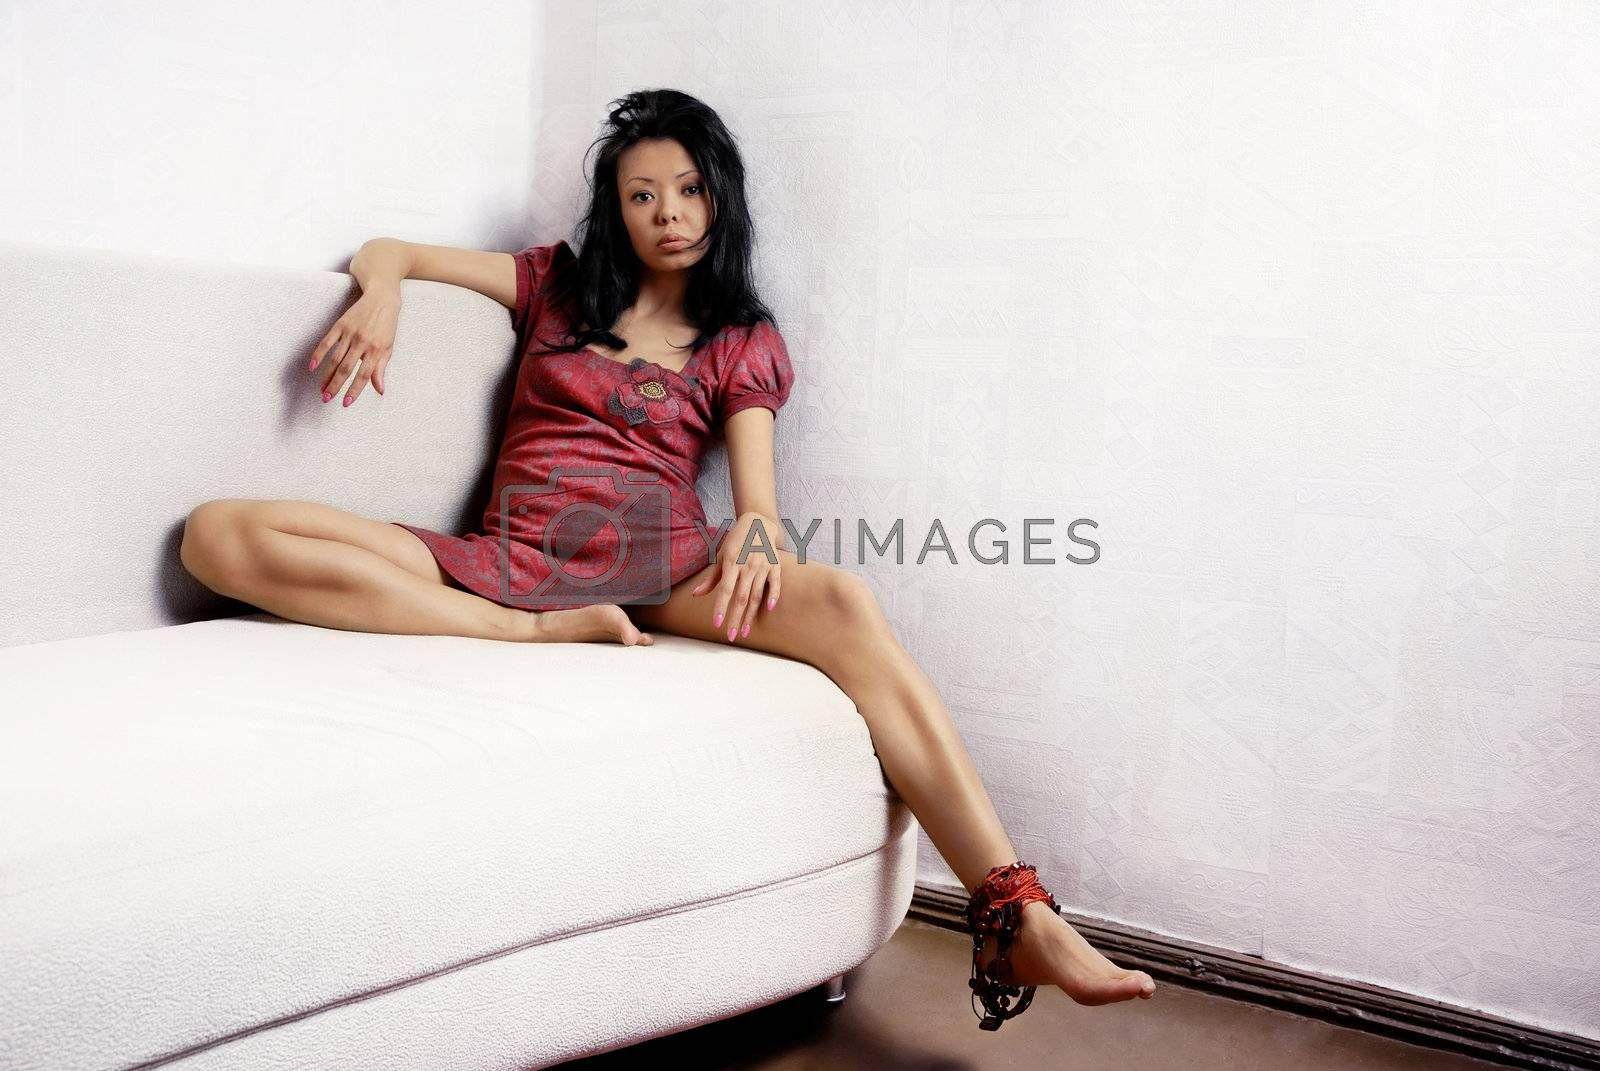 Tired woman with long legs sitting on the sofa in light room